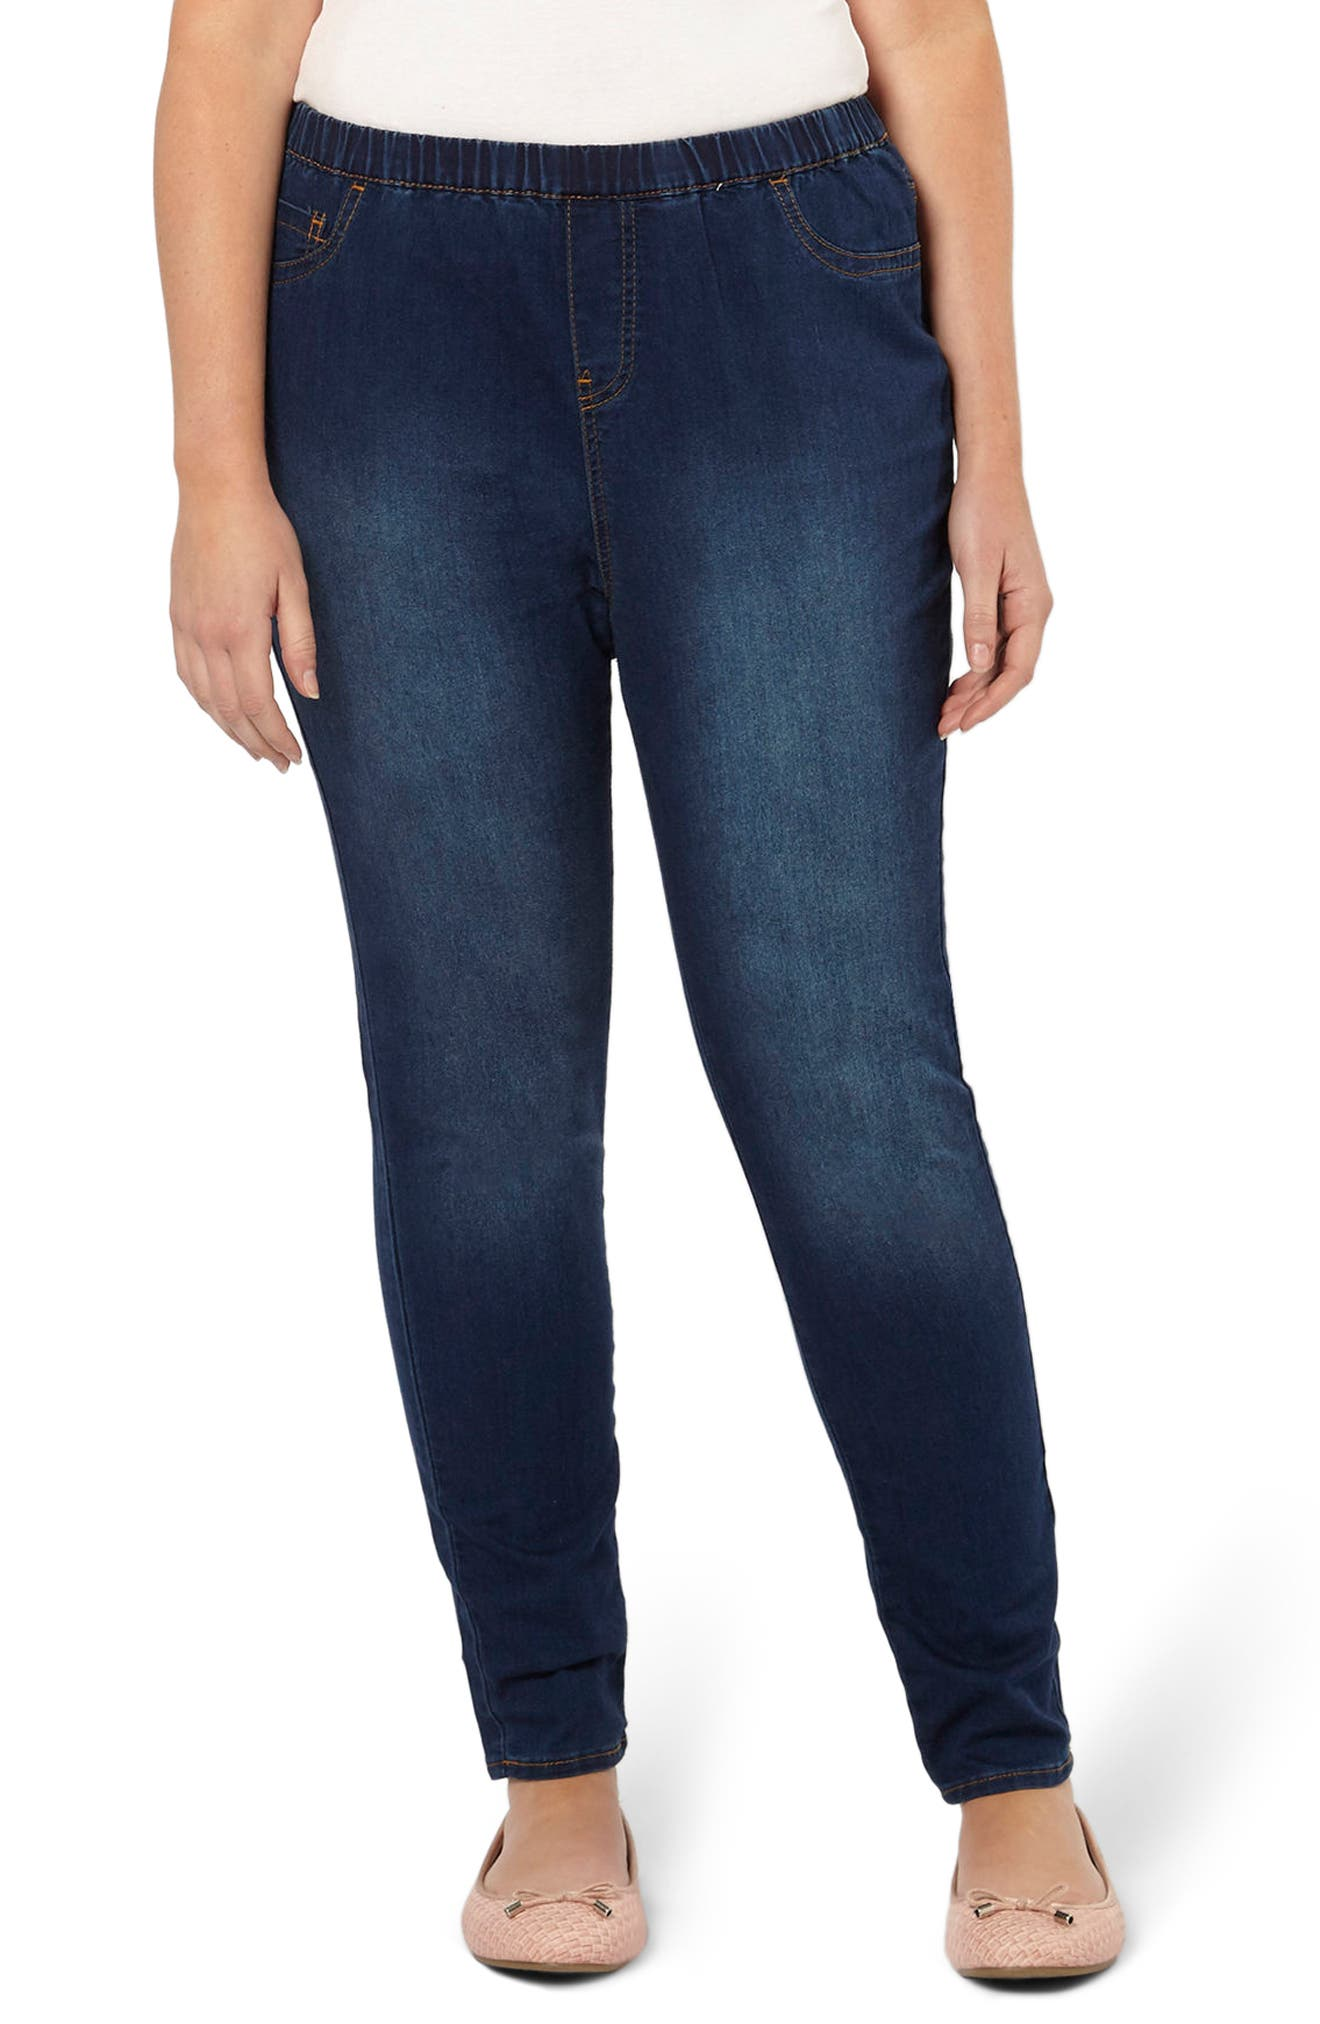 Denim Leggings,                             Main thumbnail 1, color,                             Mid Wash